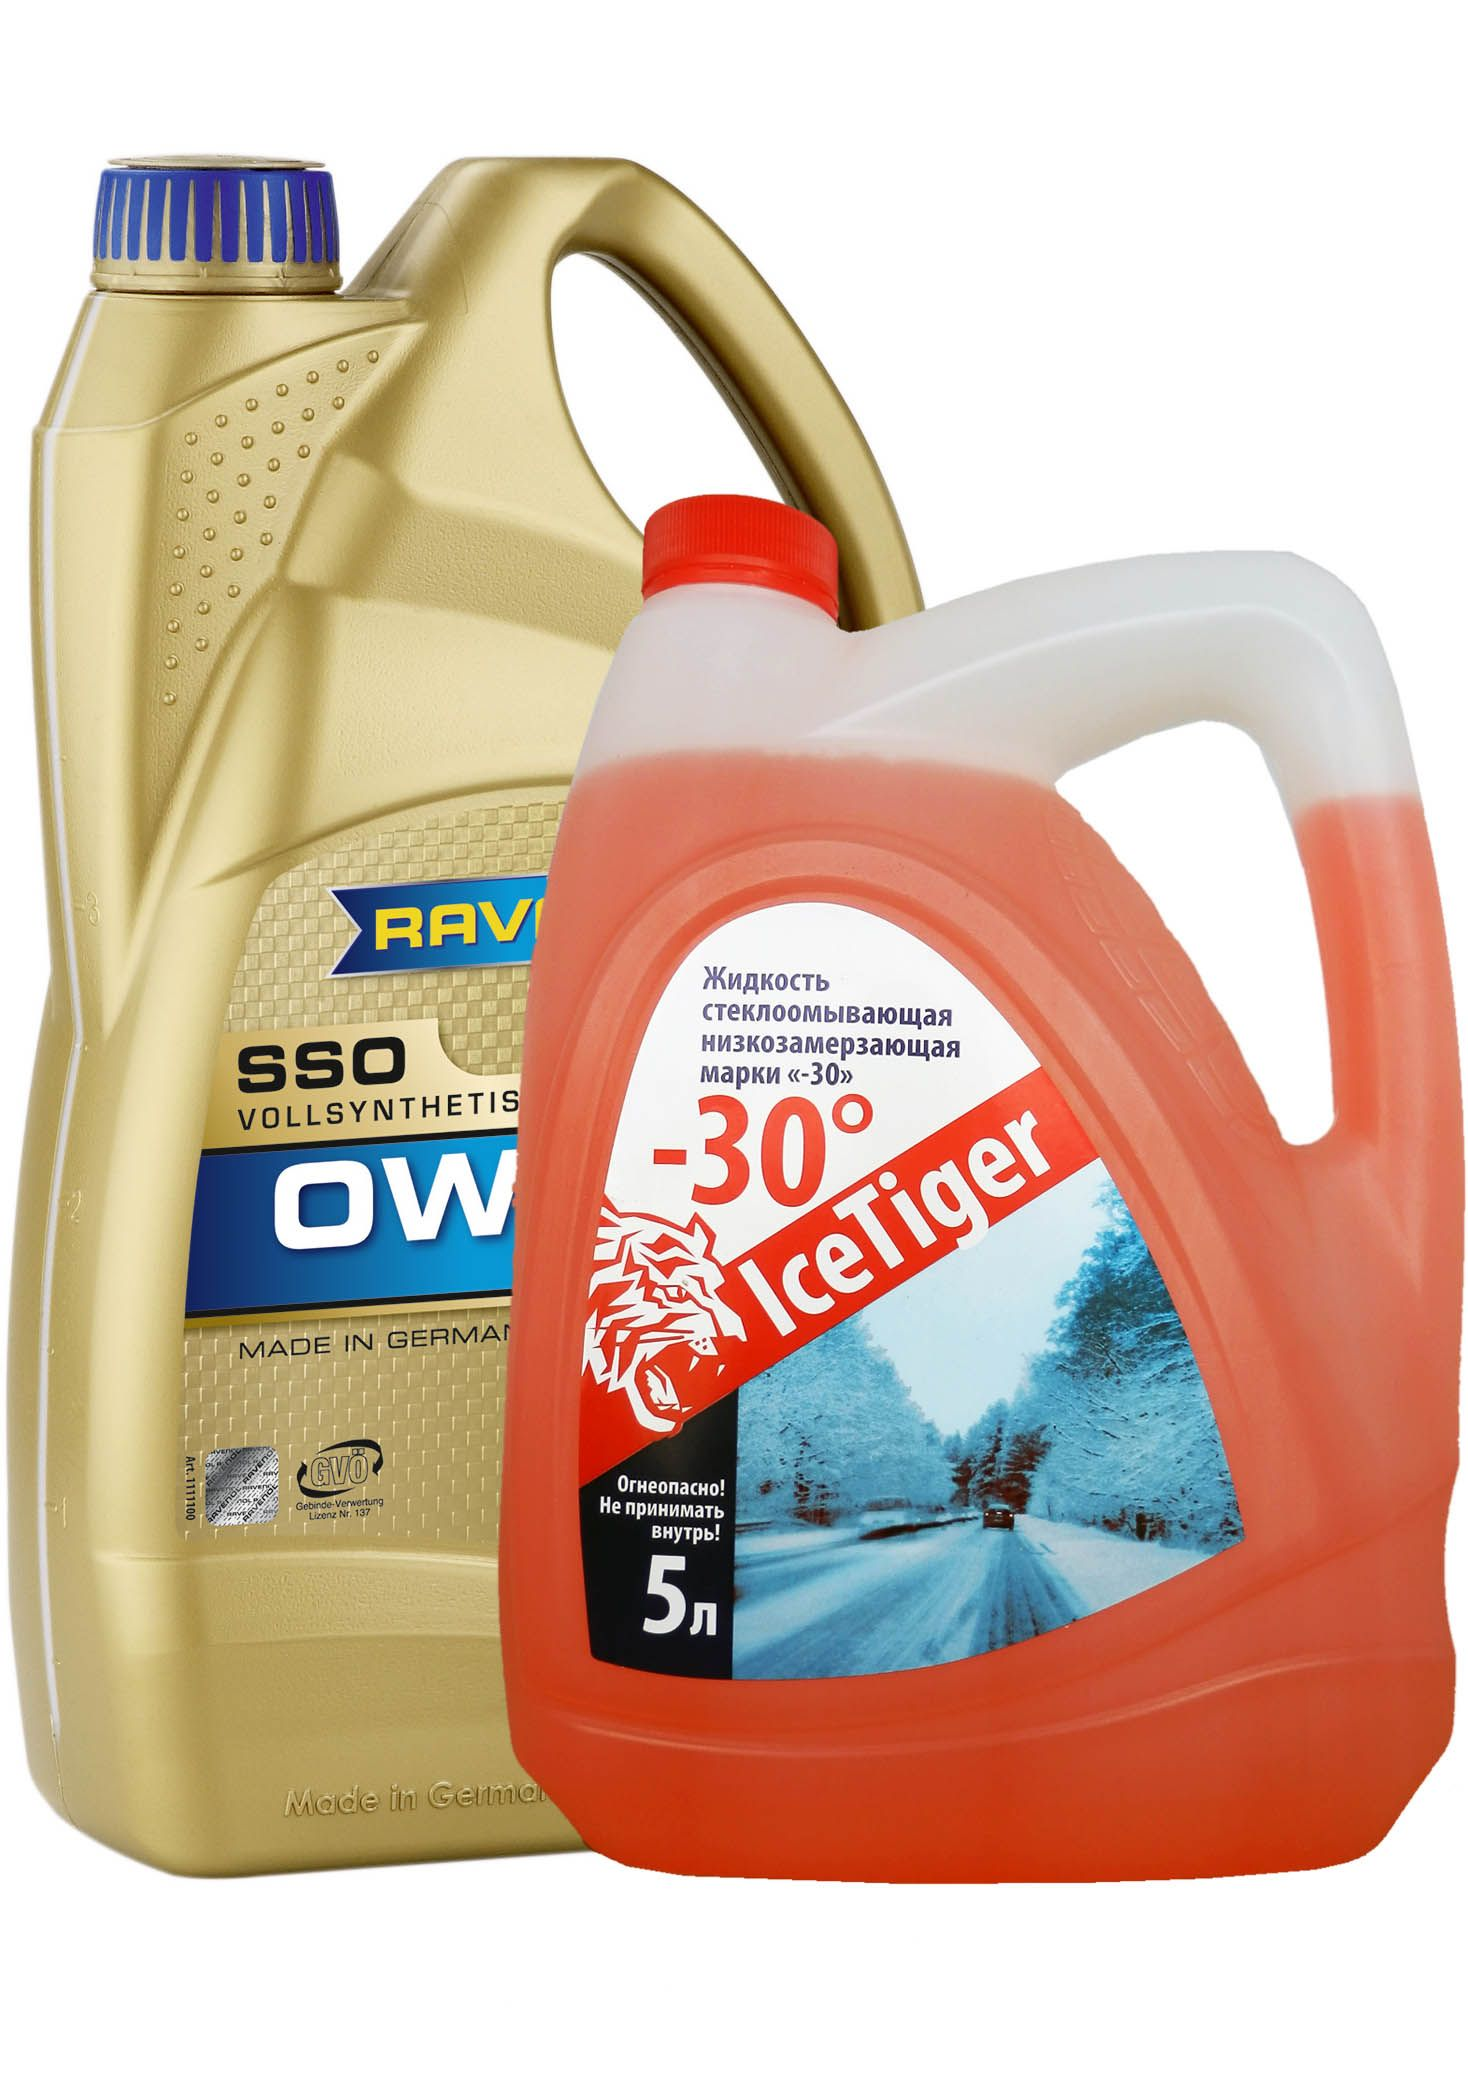 Набор RAVENOL SSO SAE 0W-30 ( 4л) new+ Ice Tiger -30 (5л) от Ravta